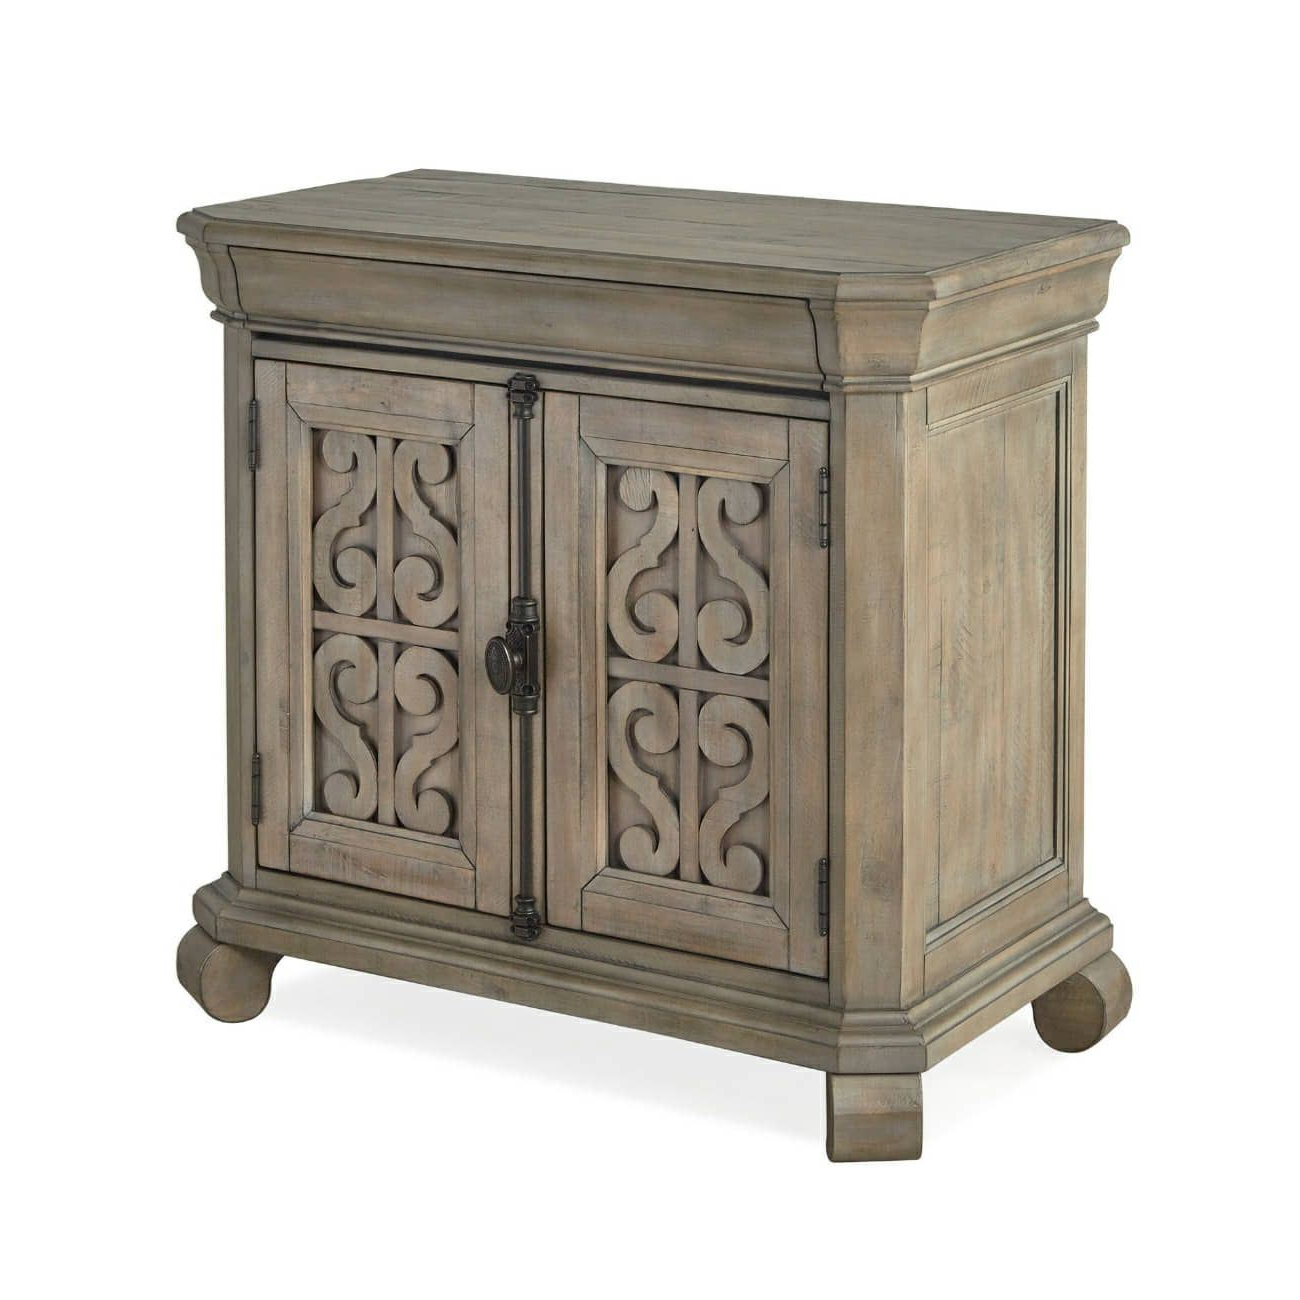 Preferred Tinley Park Traditional Dove Tail Grey Coffee Tables Intended For Tinley Park Bachelor Chest (View 17 of 20)